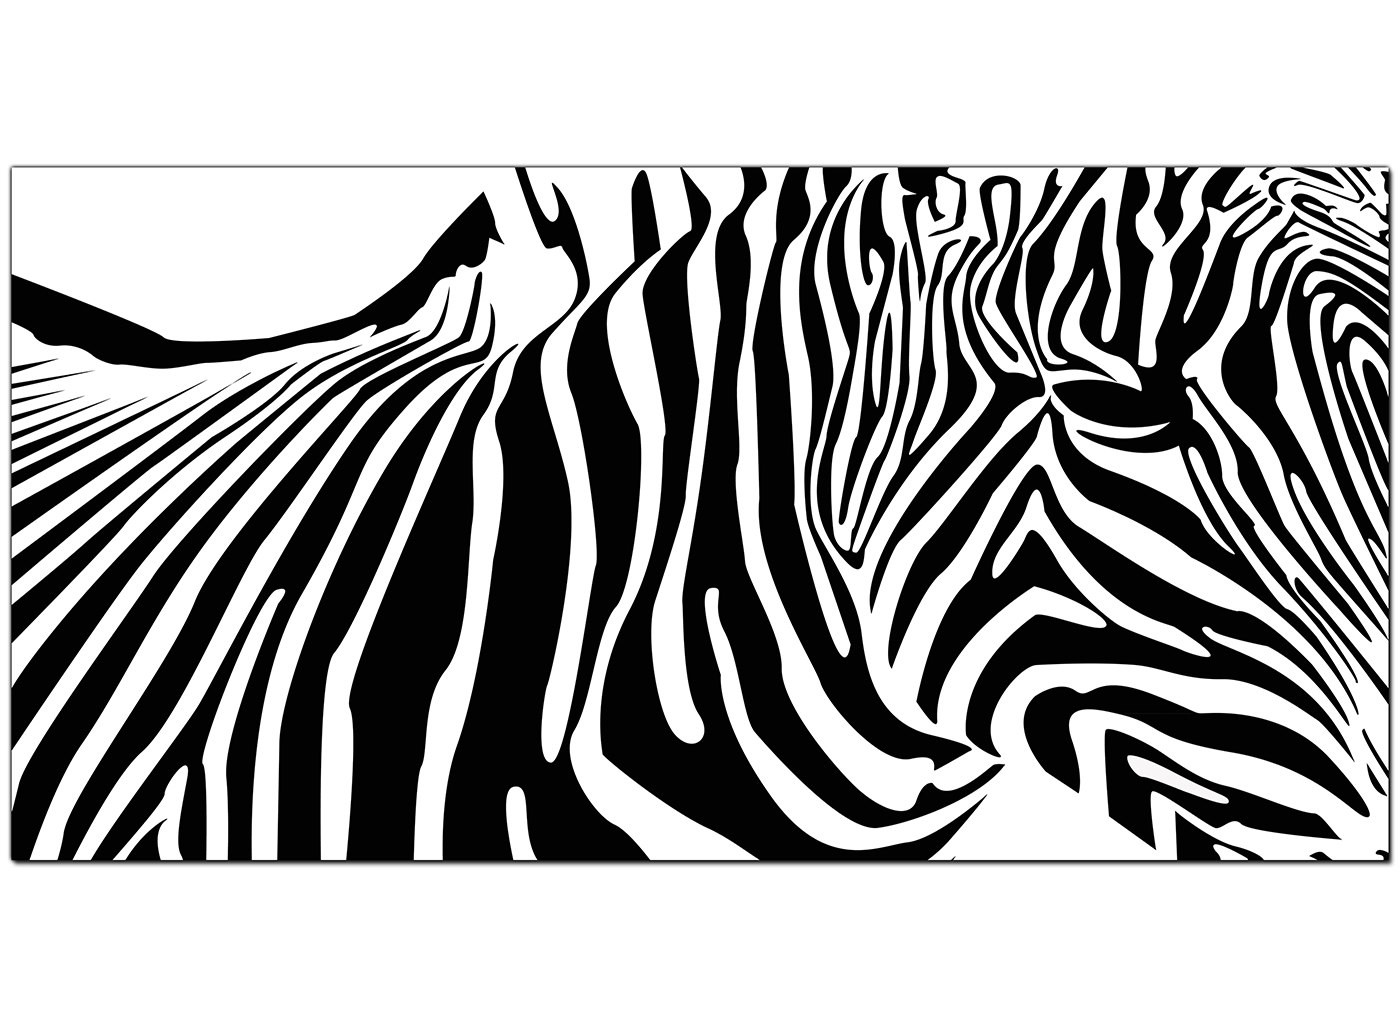 Cheap Black And White Canvas Art Of An Abstract Zebra